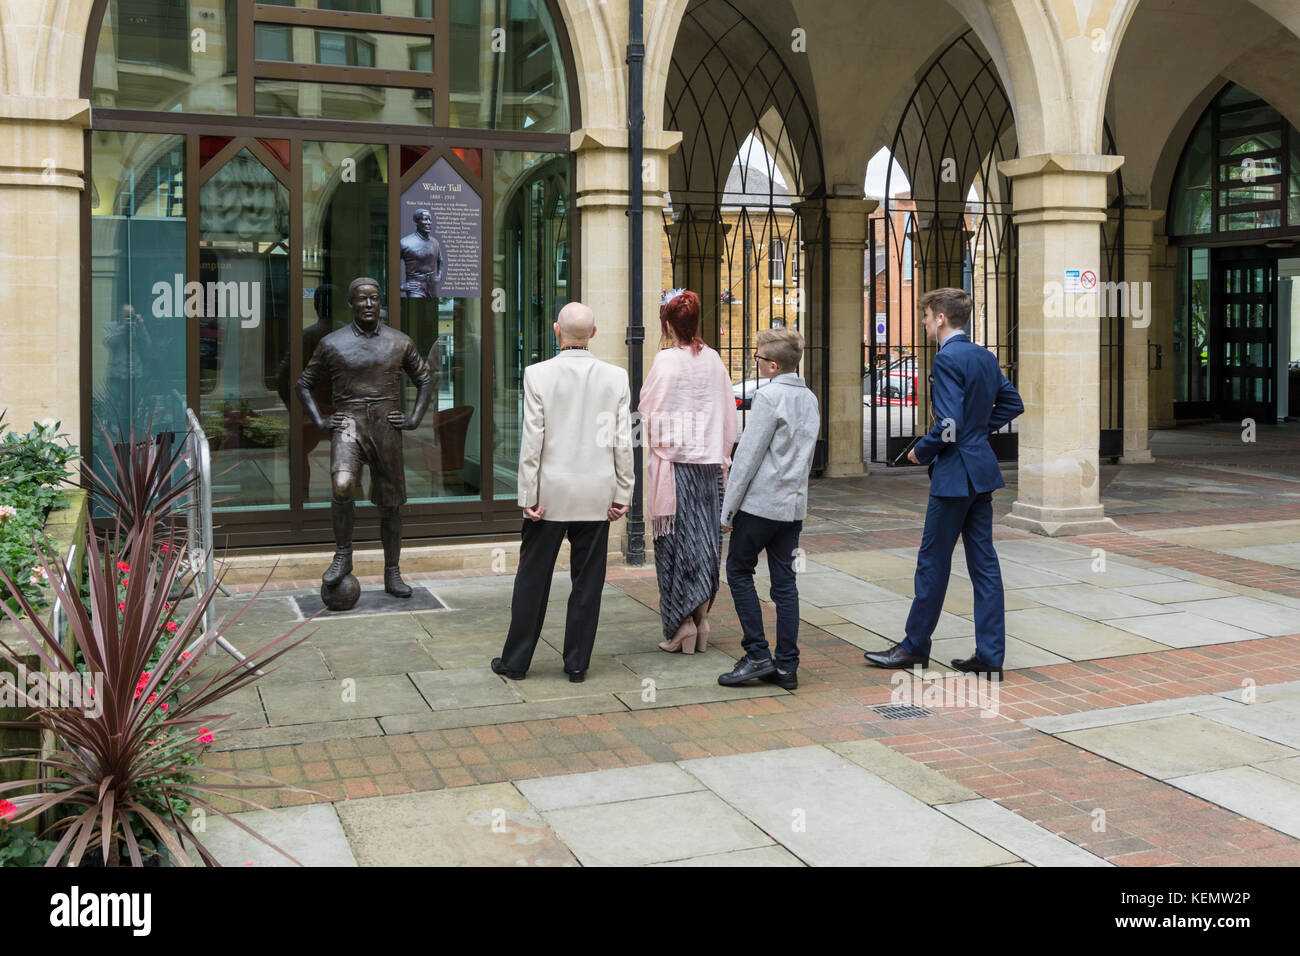 Four visitors viewing a statue of Walter Tull, footballer and war hero, in the courtyard of the Guildhall, Northampton, - Stock Image